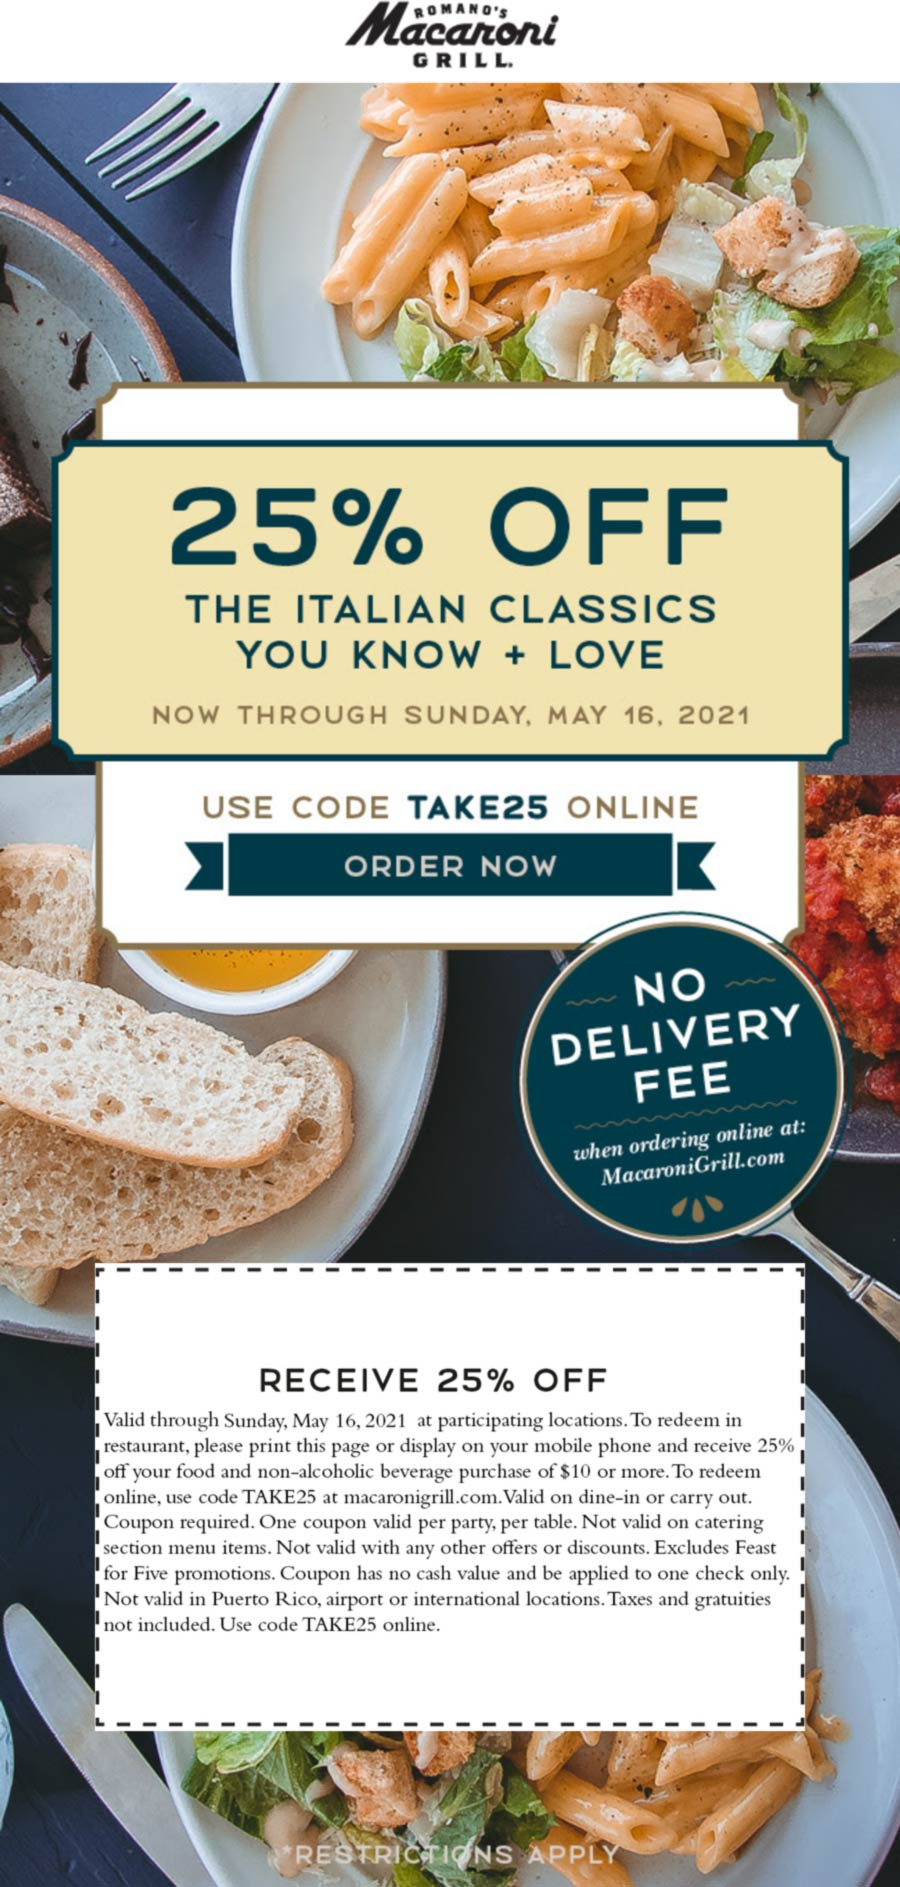 Macaroni Grill restaurants Coupon  25% off at Macaroni Grill restaurants via promo code TAKE25 #macaronigrill